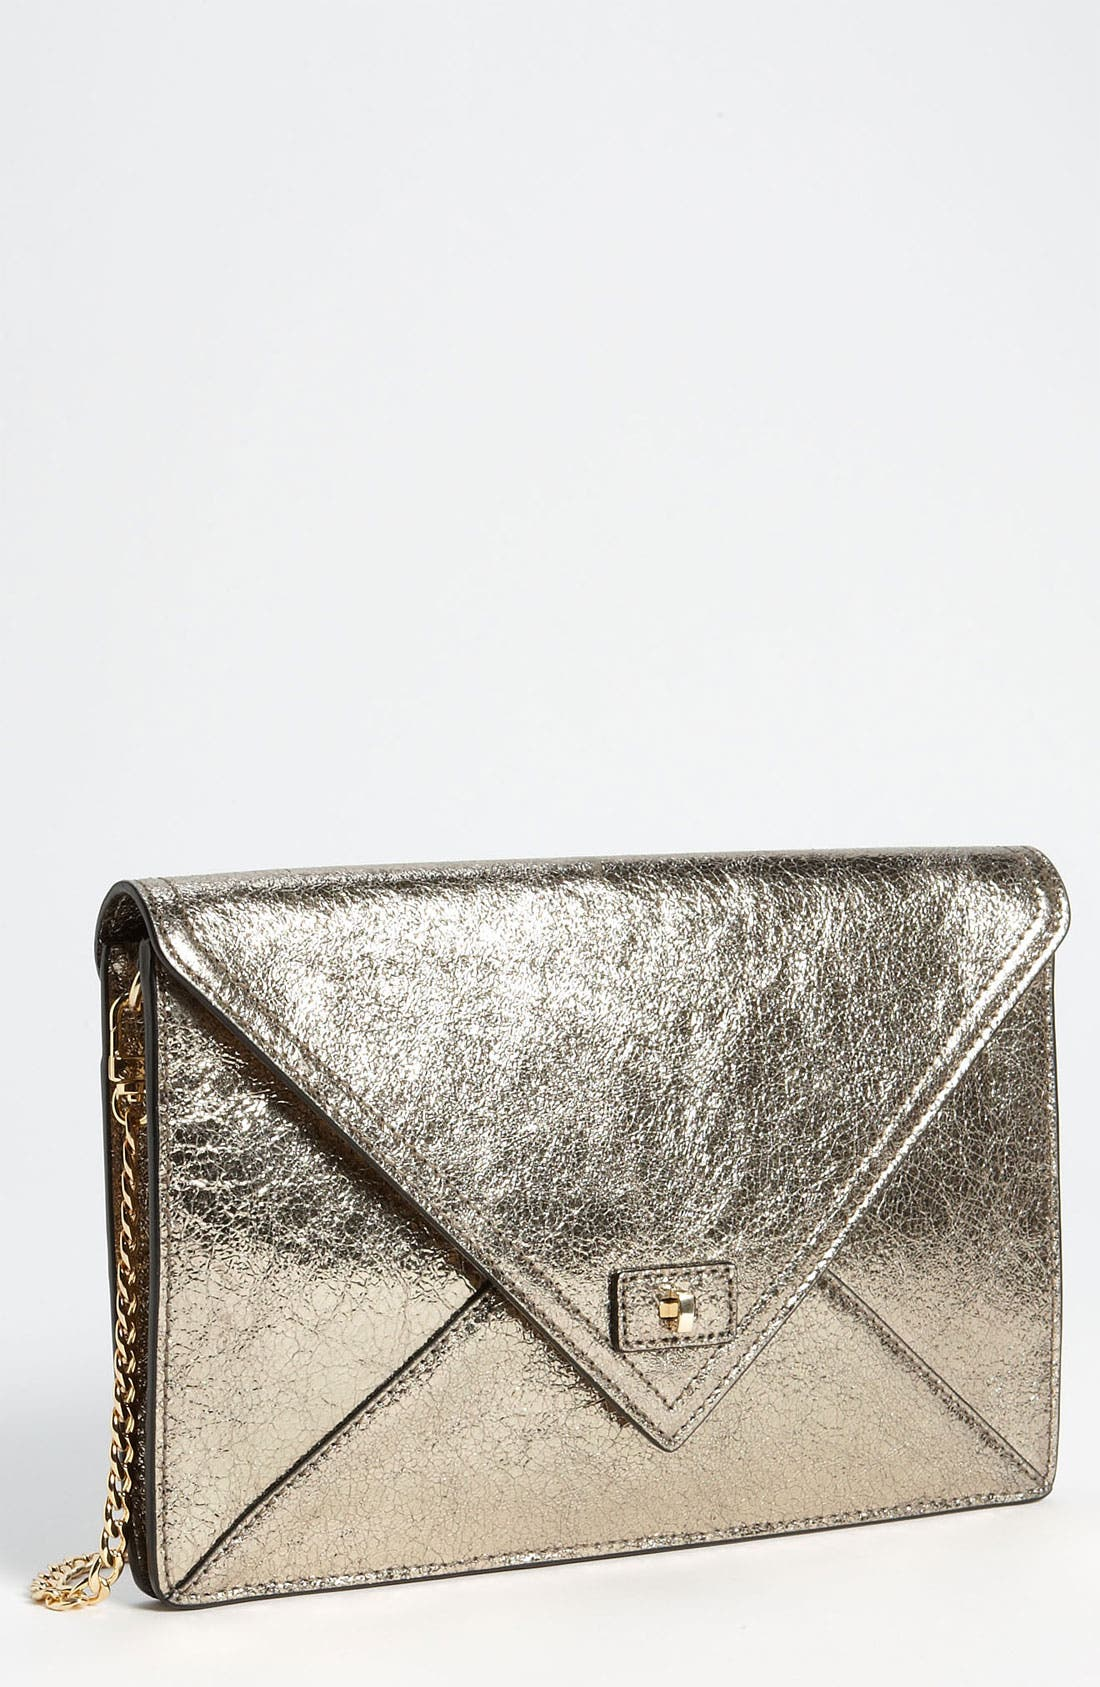 Alternate Image 1 Selected - Milly 'Lola' Envelope Clutch